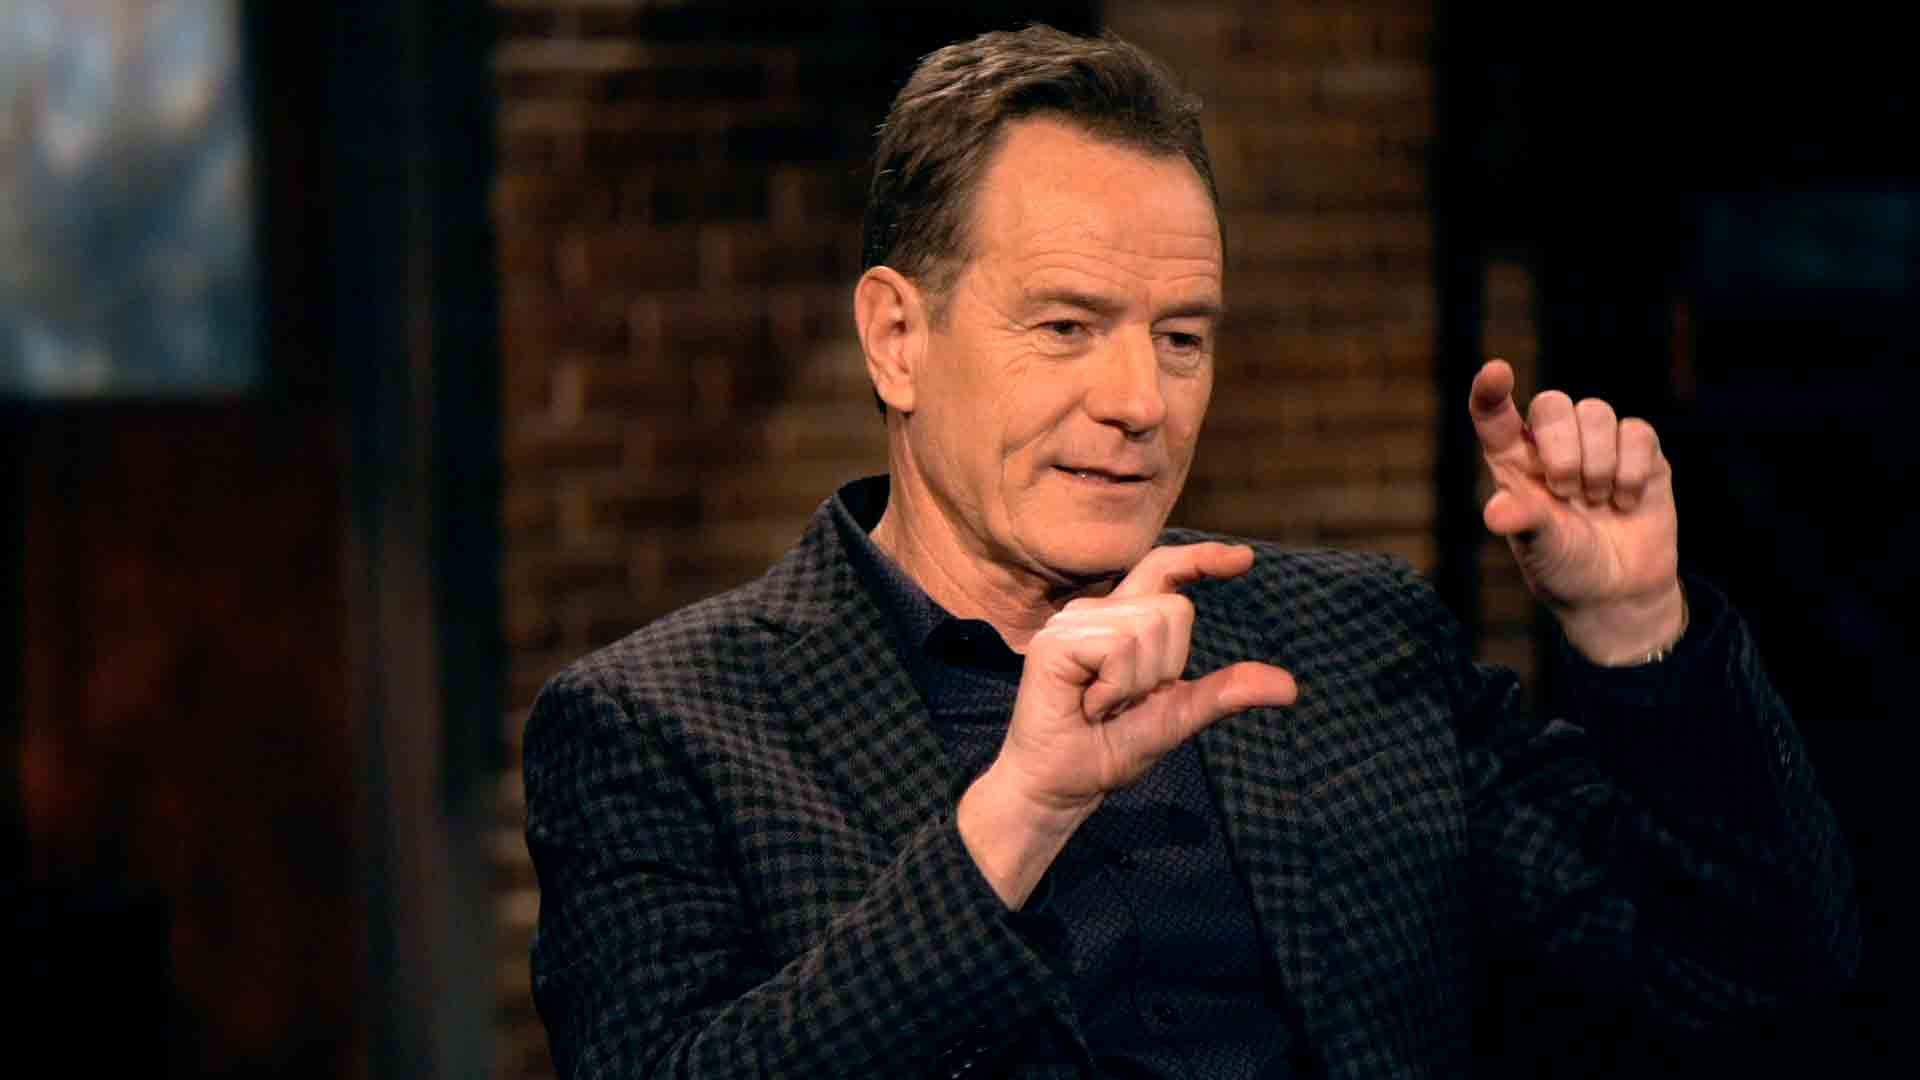 Find Out How Bryan Cranston Got His 'Breaking Bad' Tattoo